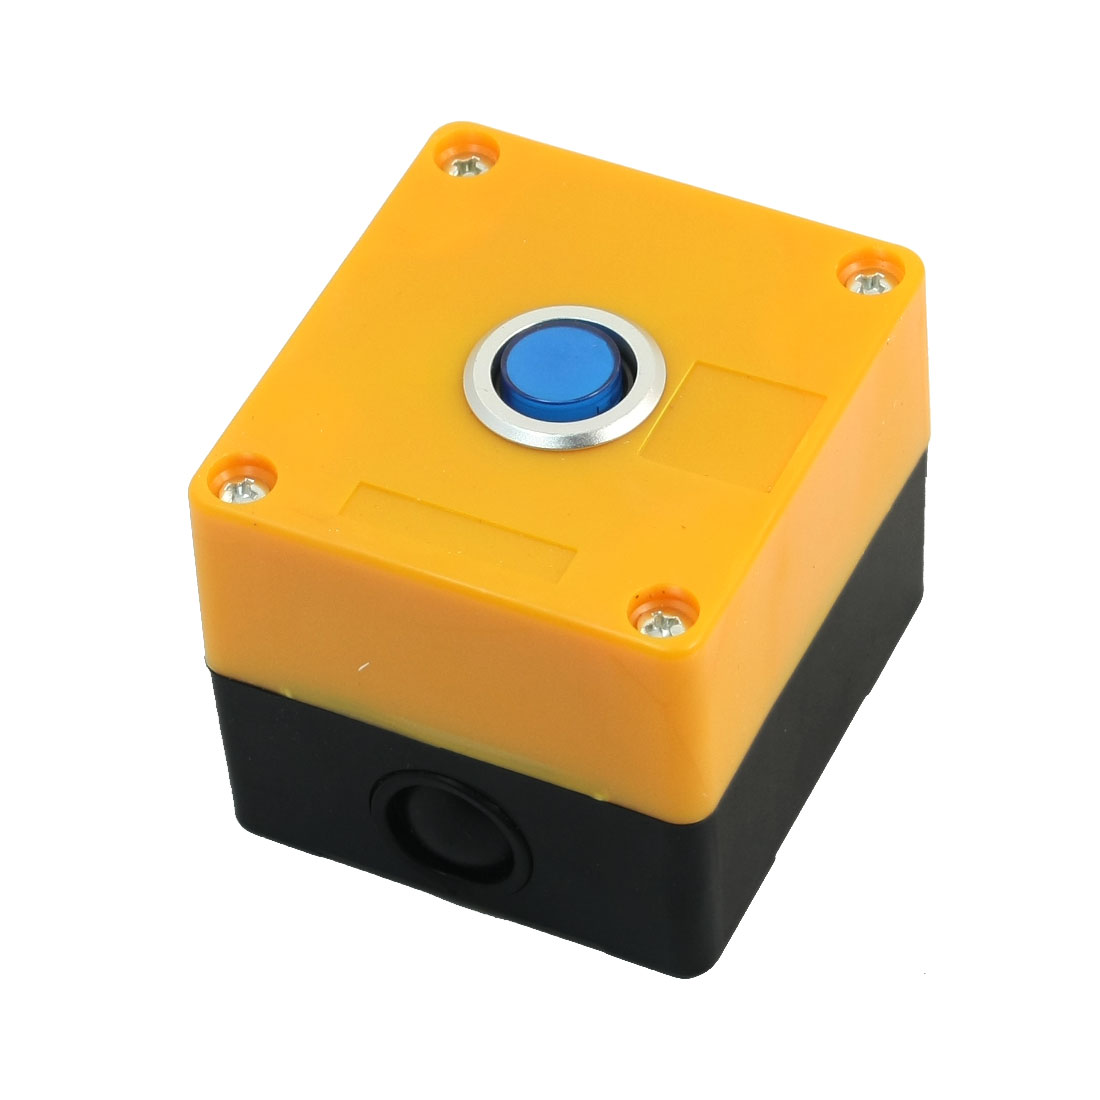 AC 220V 5A Blue Lamp SPDT 1NO 1NC 5-Pin Momentary Rectangle Plastic Case Push Button Station Switch Control Box